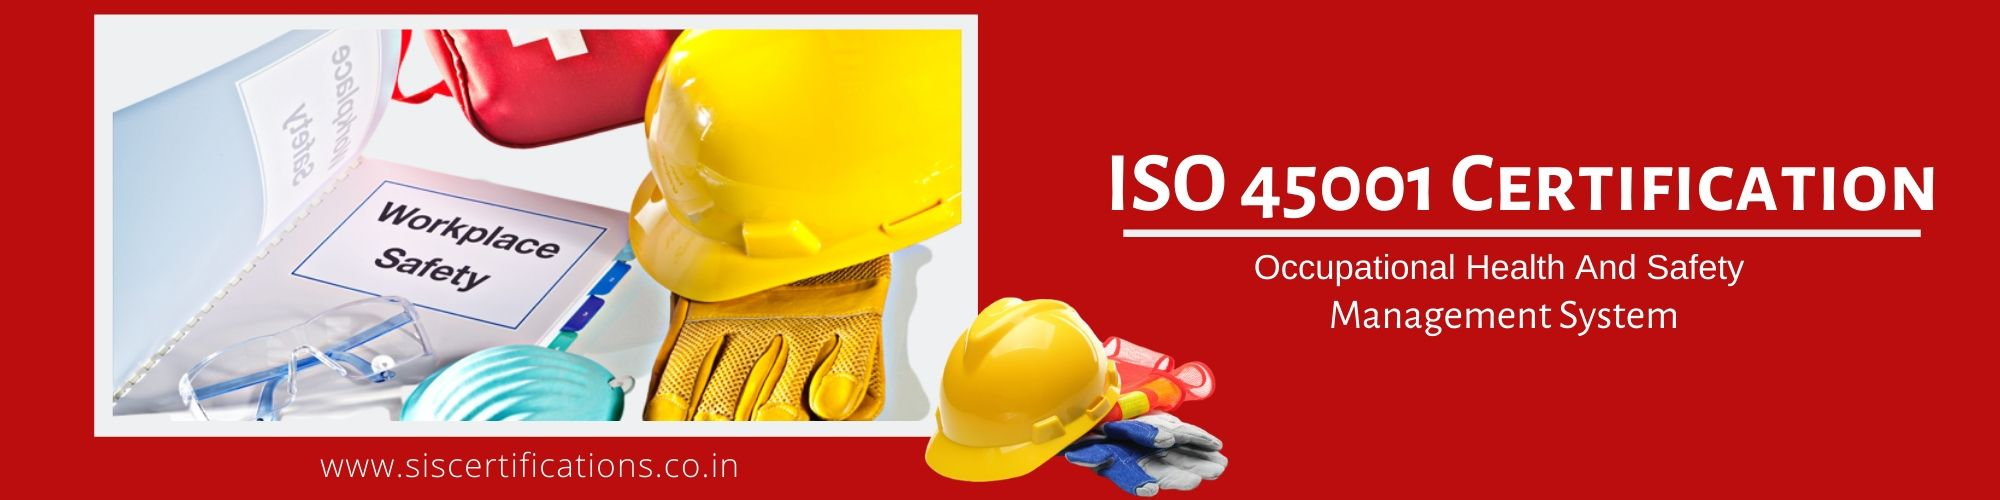 ISO 45001 Certification , ISO 45001 Certification